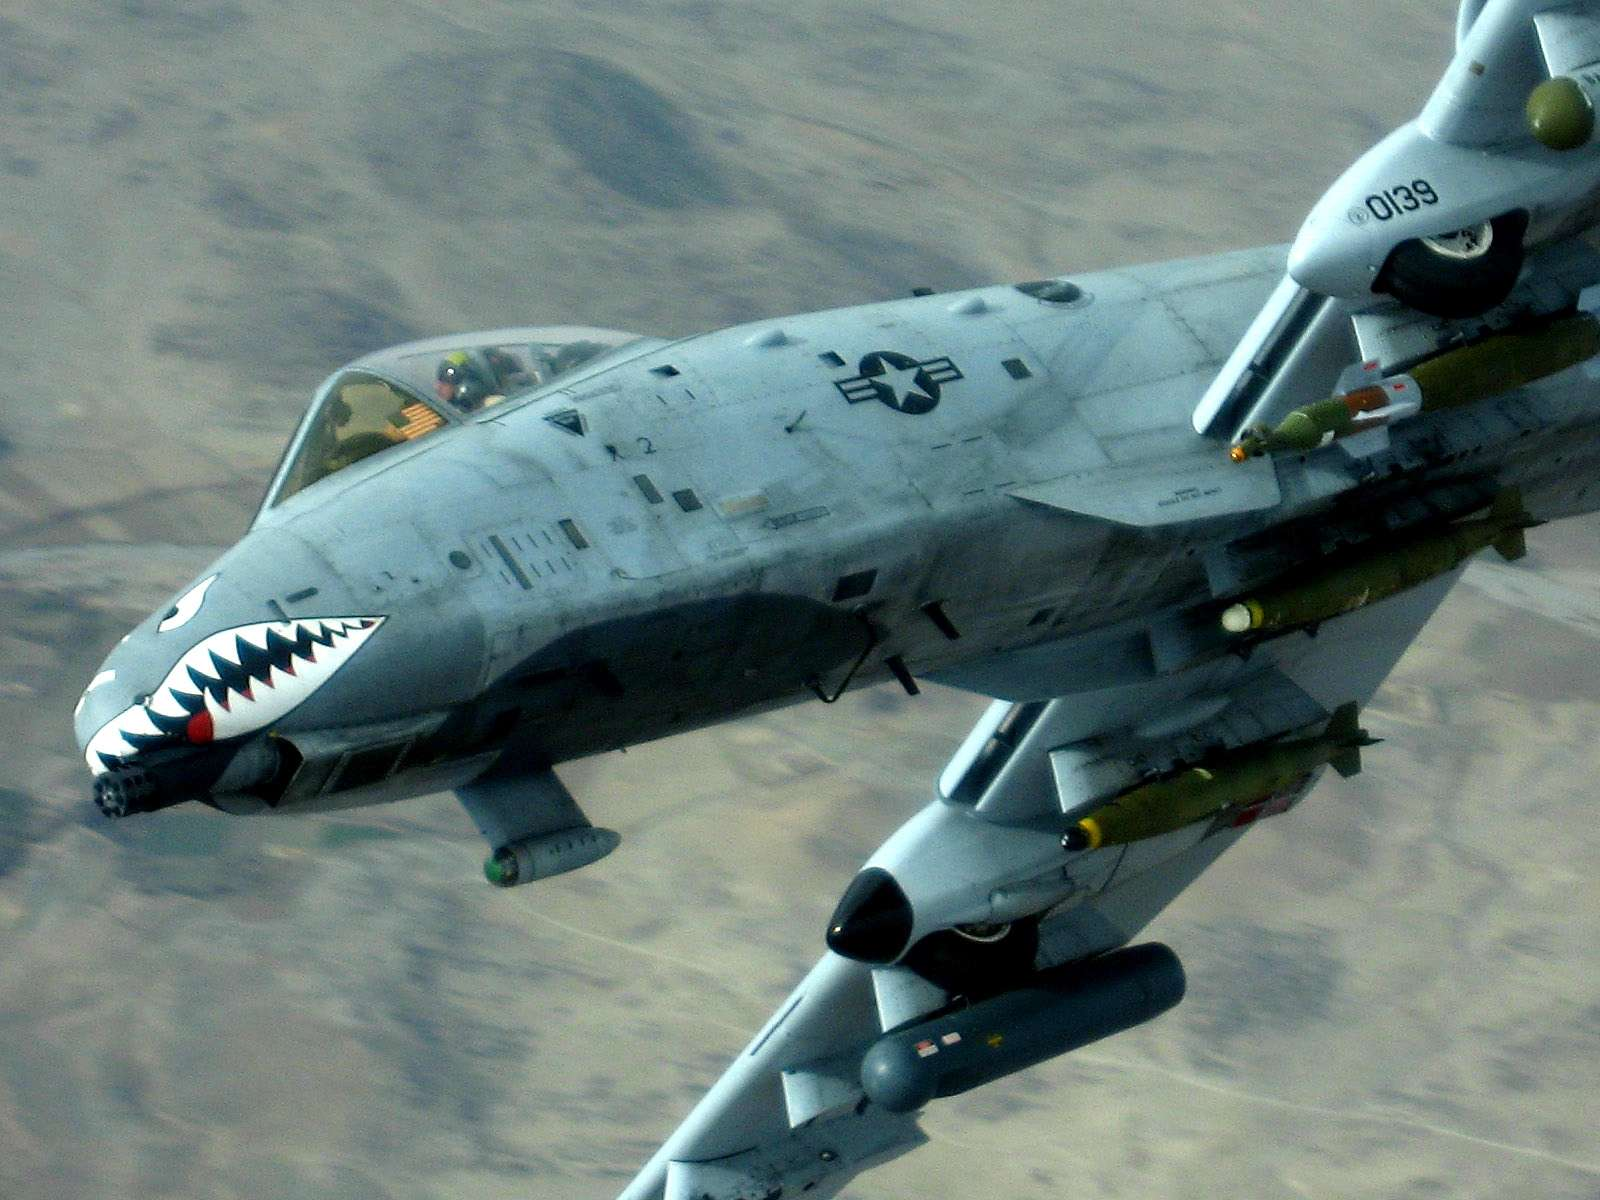 A 10 Warthog Wallpaper HD - WallpaperSafari